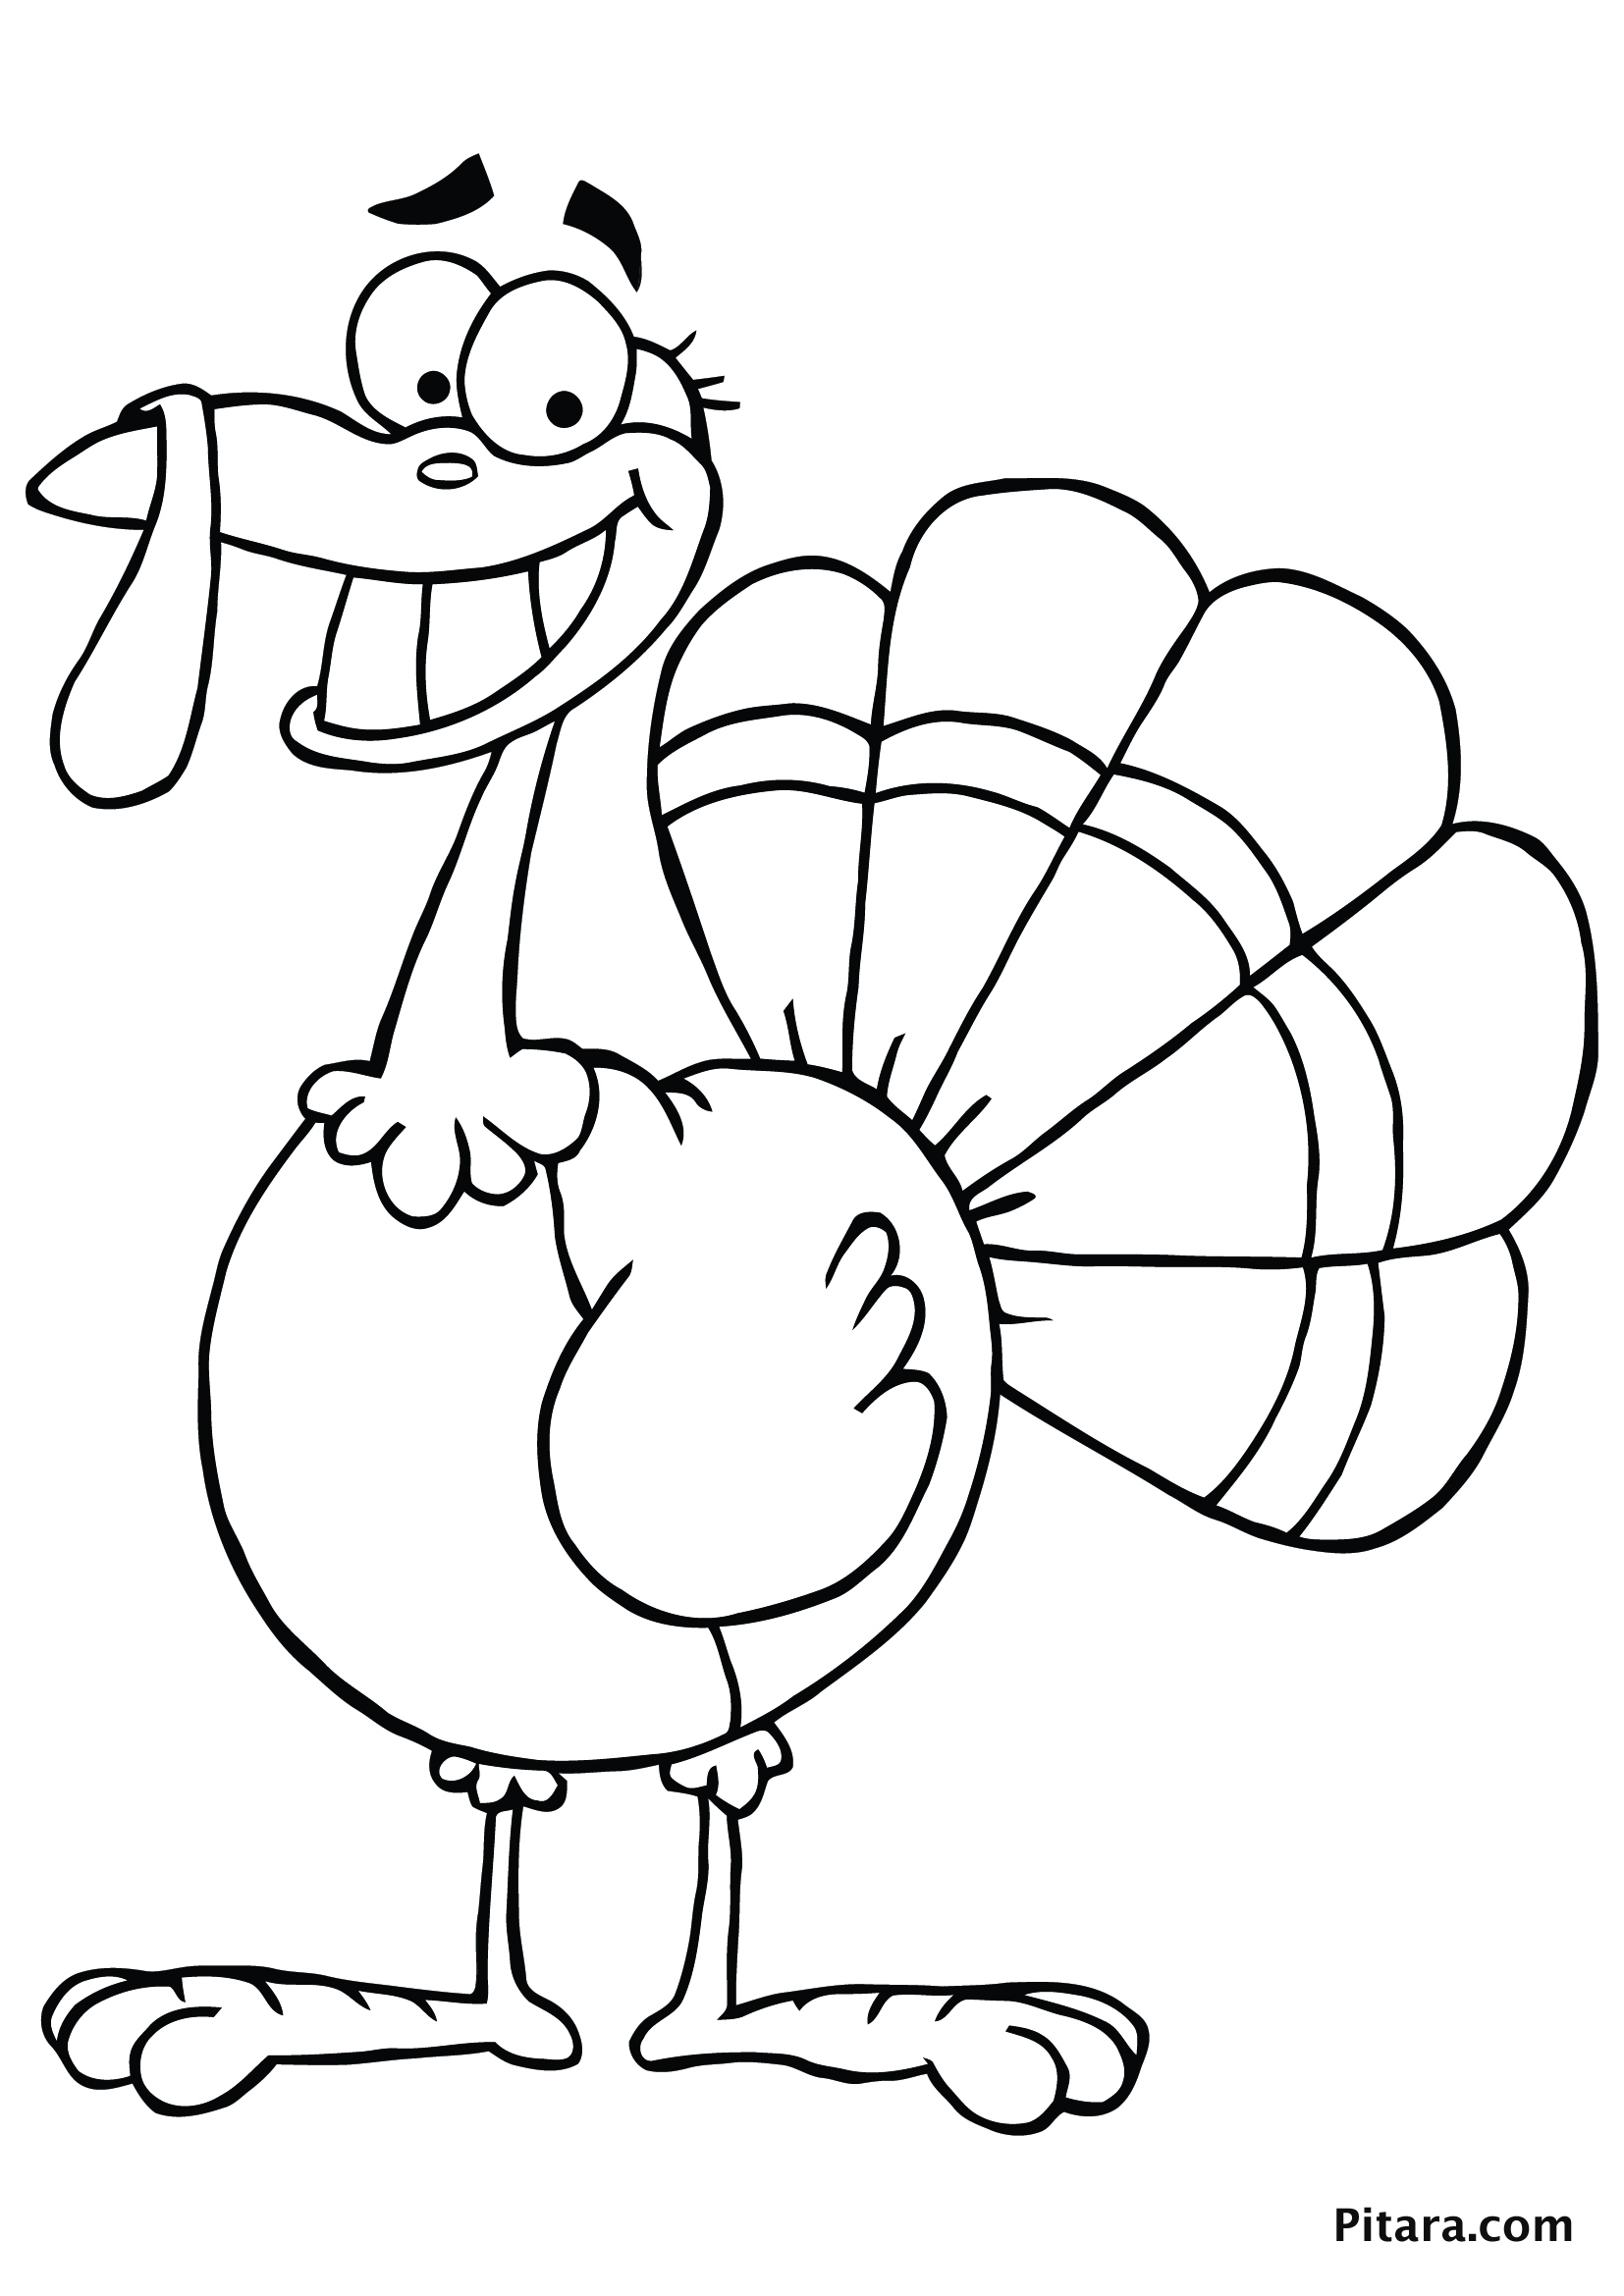 1654x2339 Turkey Coloring Pages For Kids Pitara Network